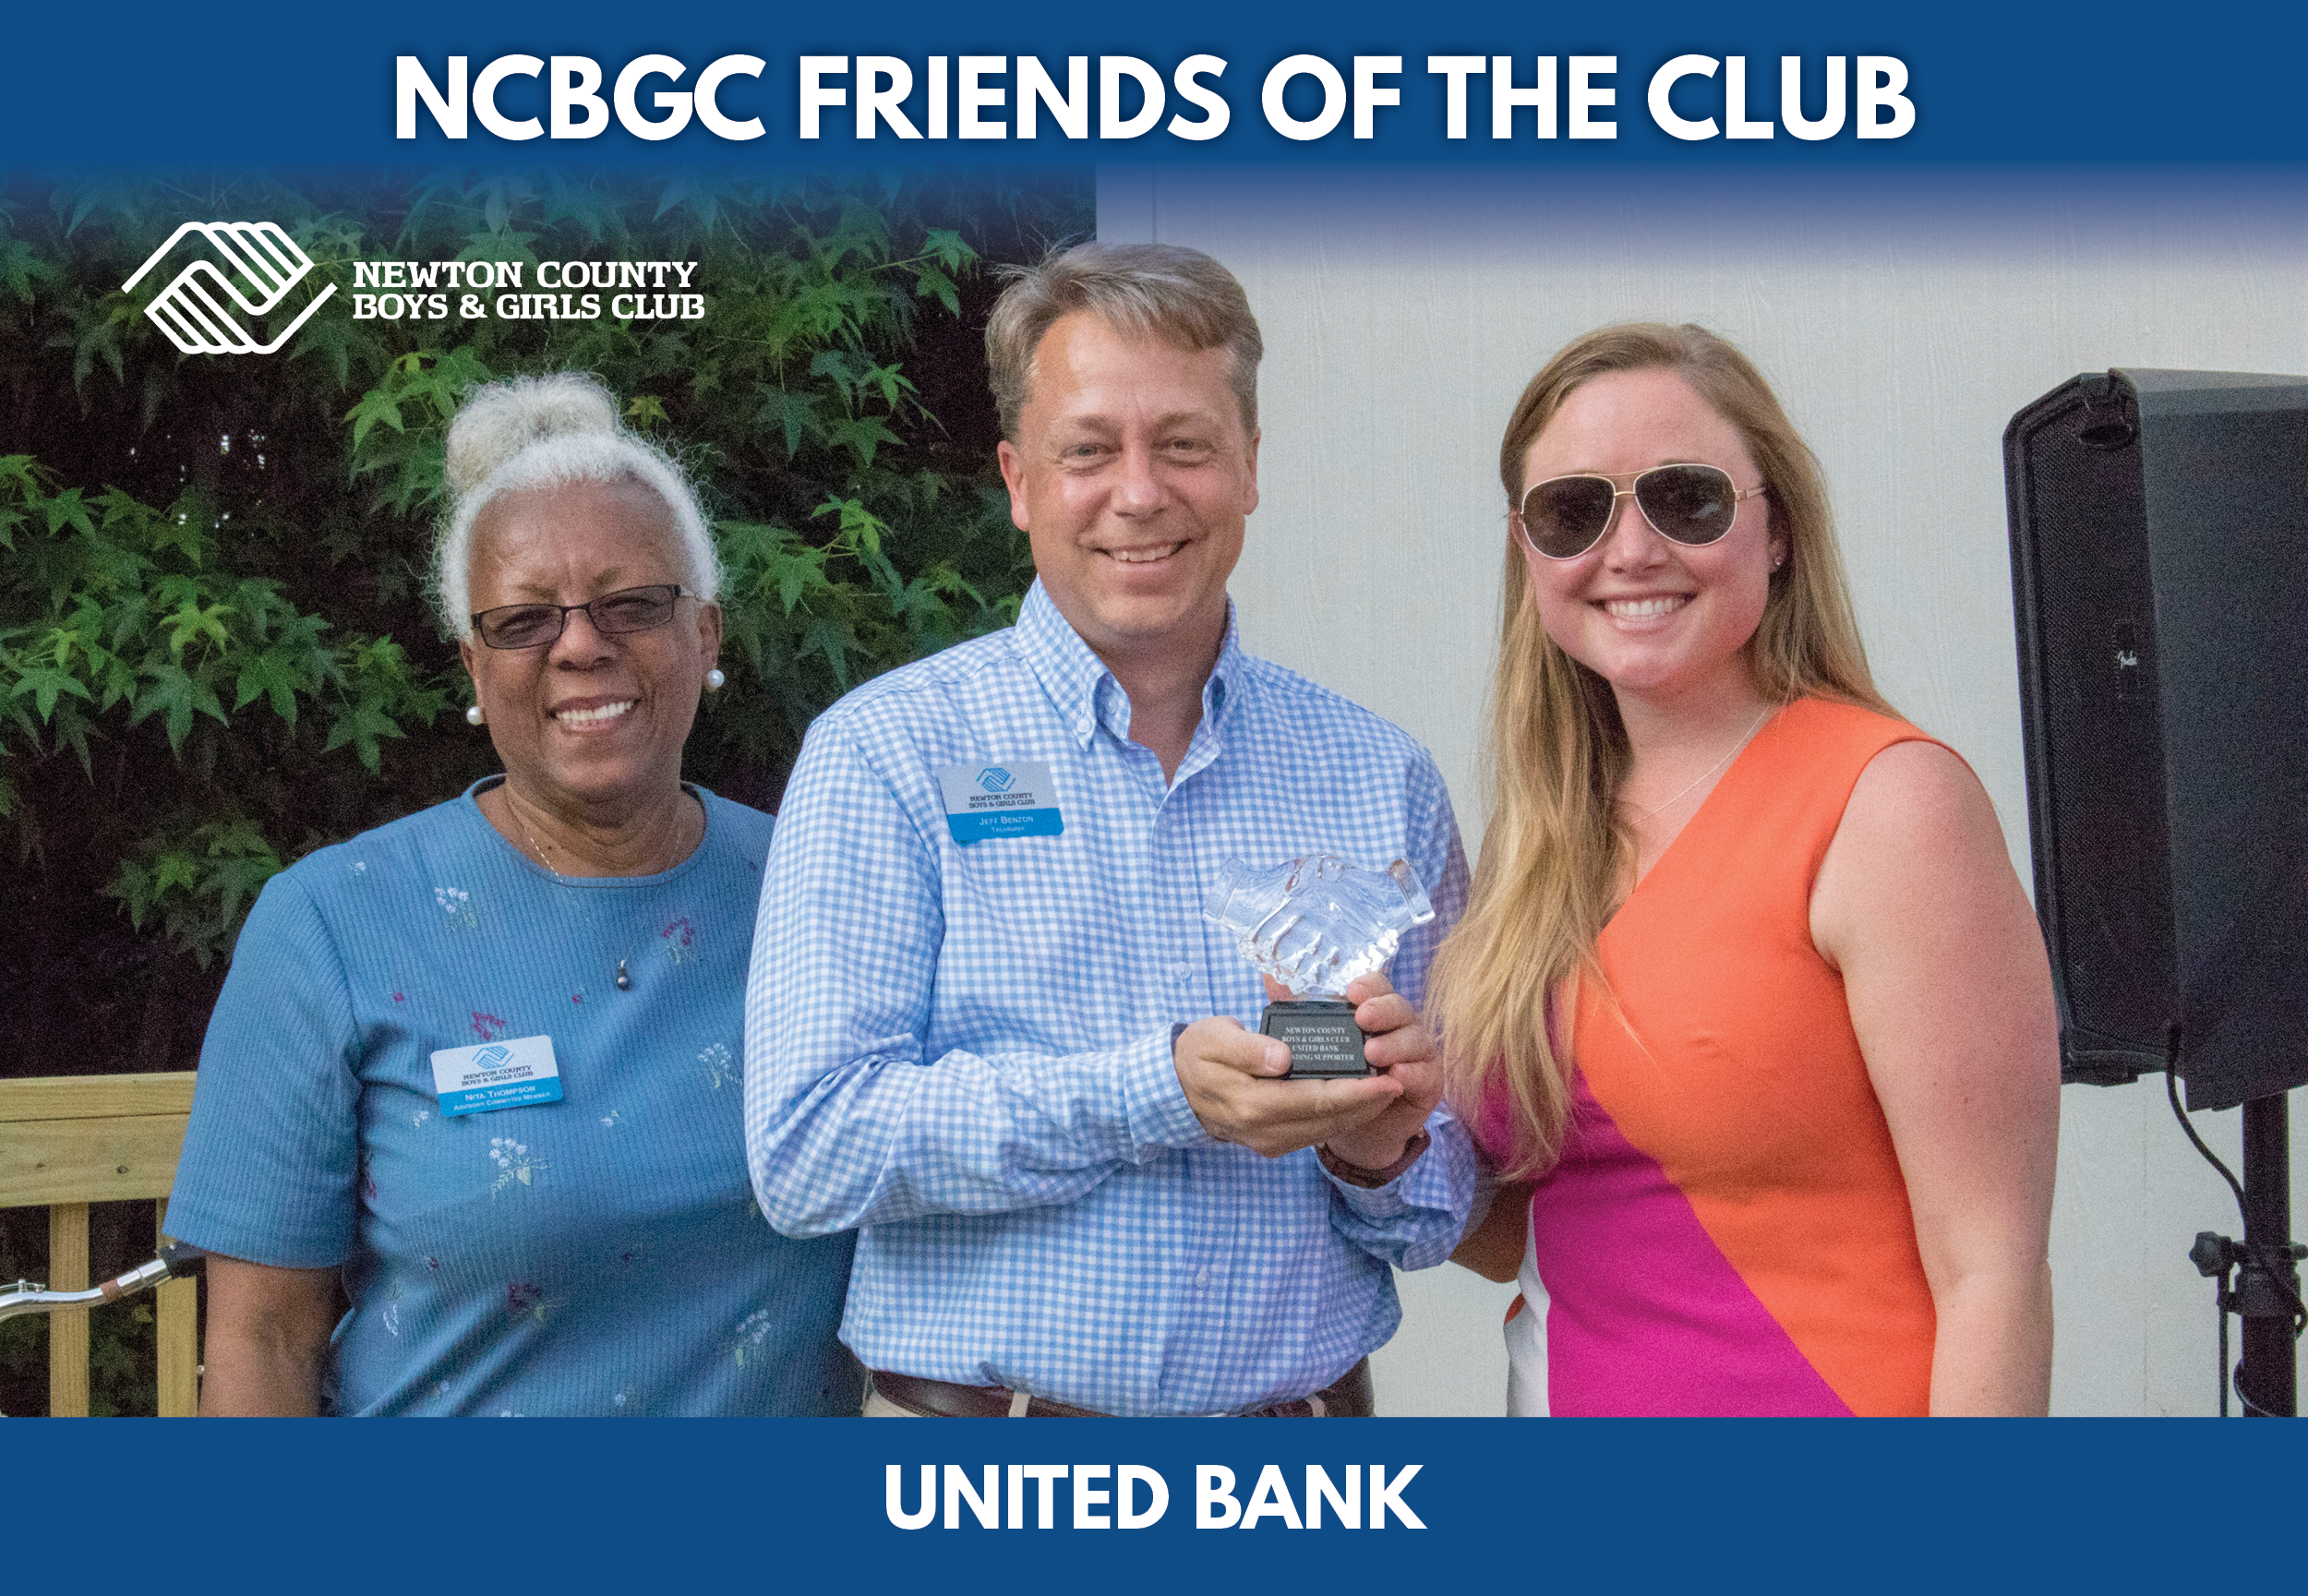 FREINDS OF CLUB UNITED BANK.png